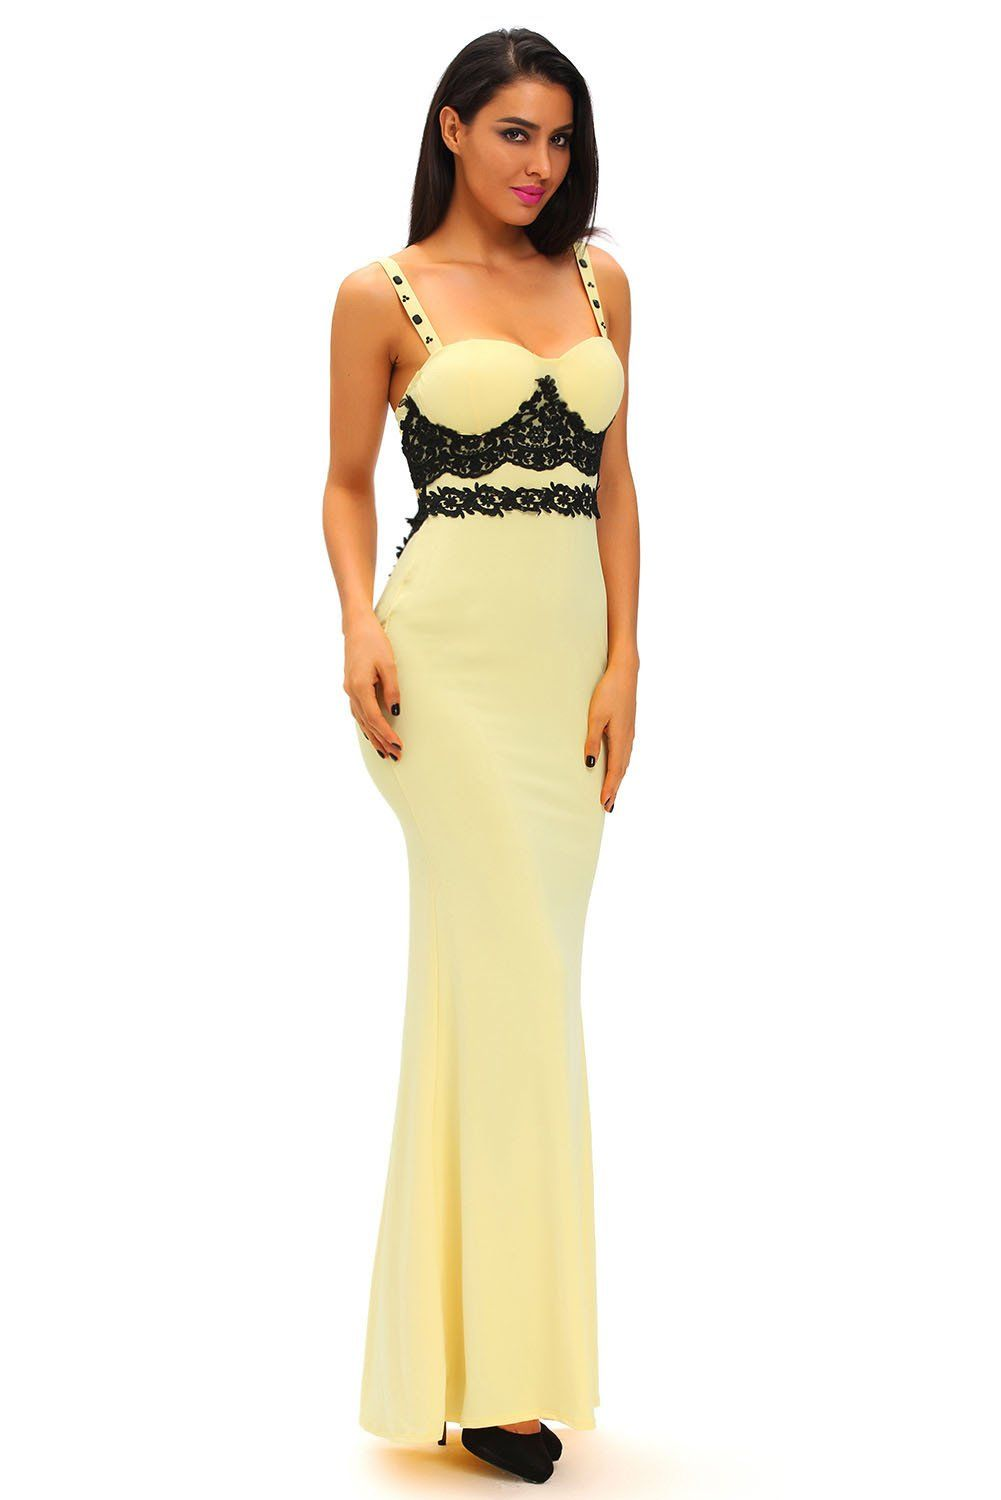 Black lace detail yellow long prom party maxi dress party maxi